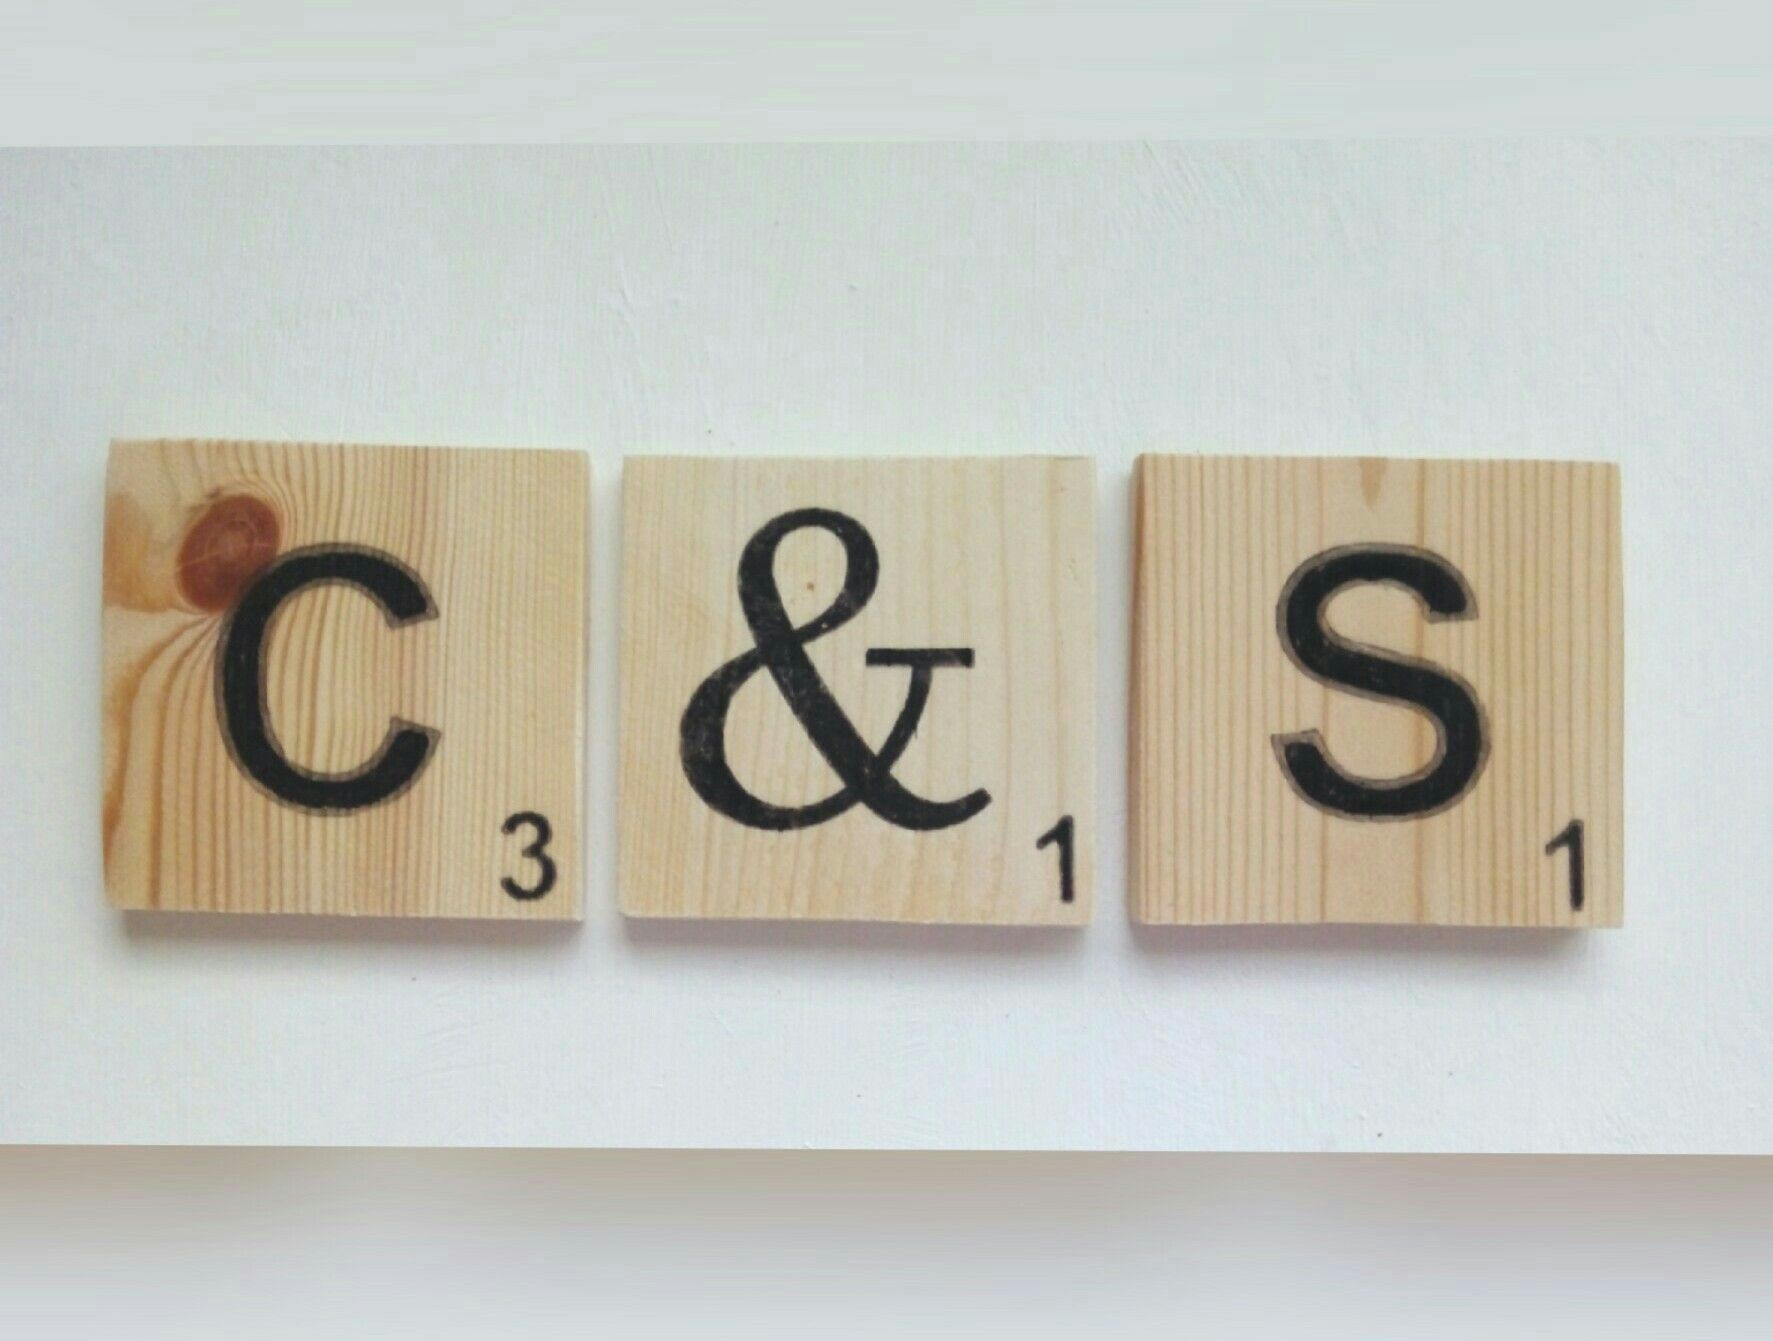 C s fichas scrable dise o y decoracion de interiores y - Scrabble decoracion ...